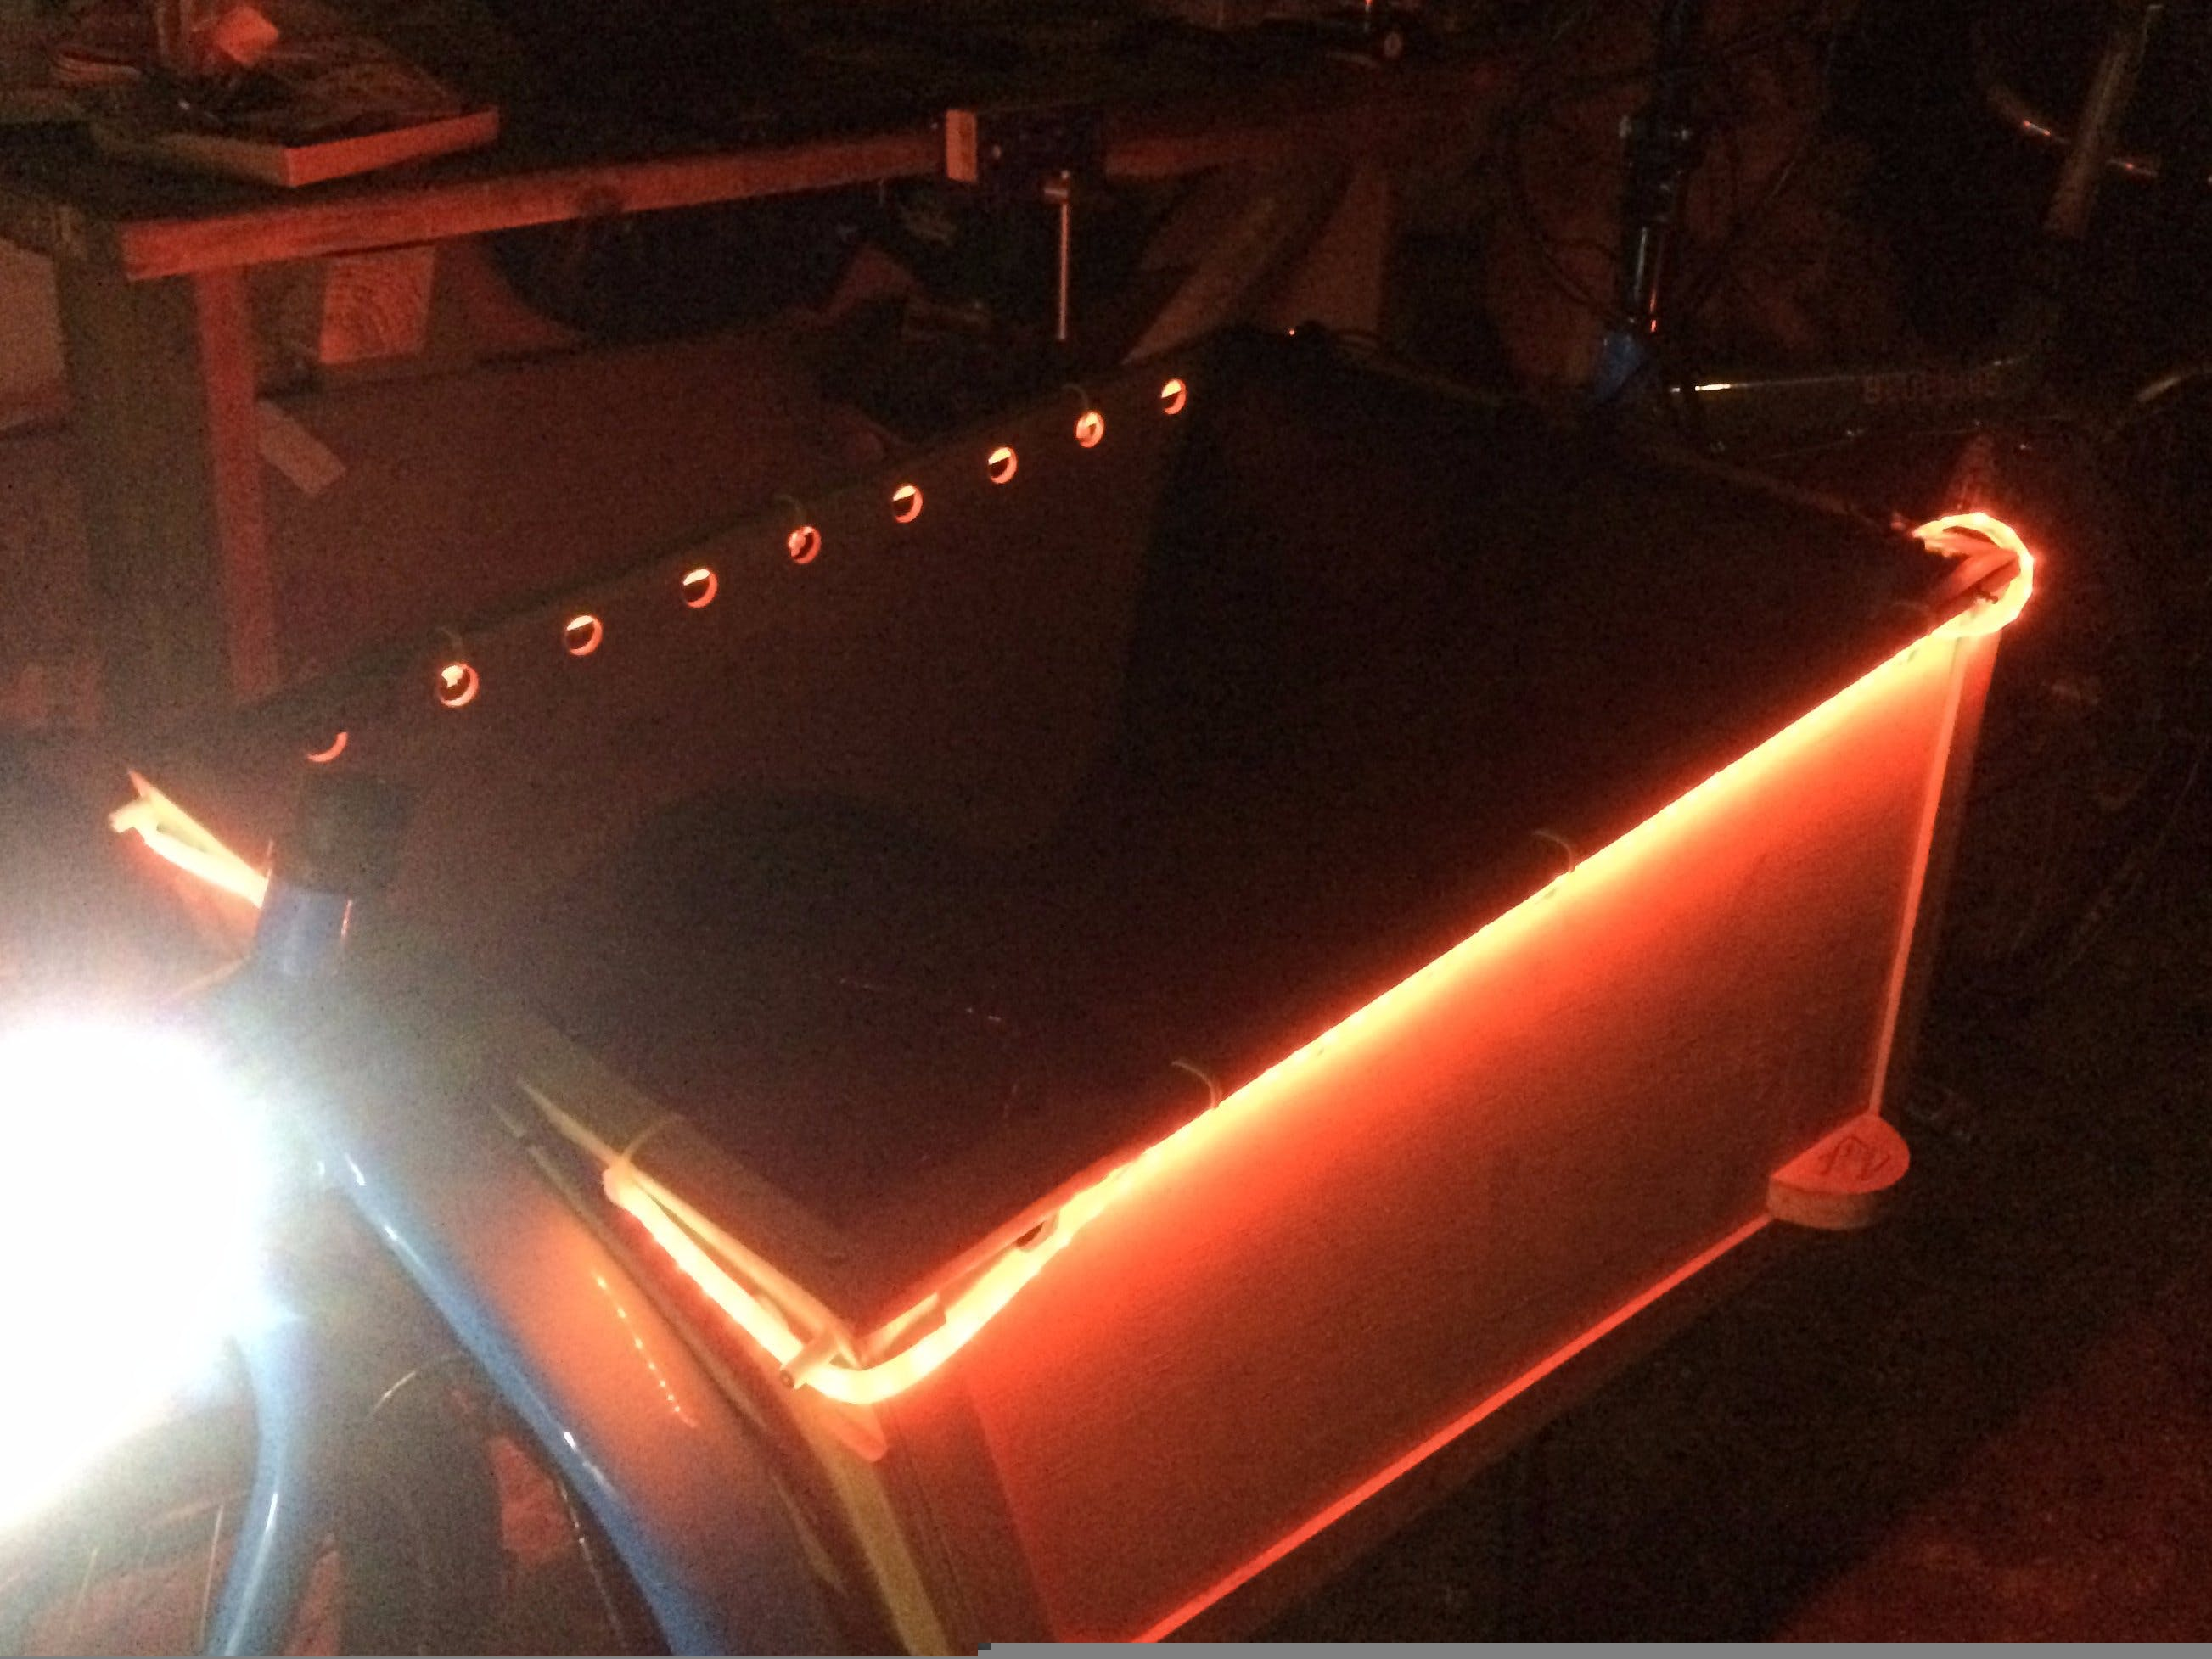 Cargo Bike Lighting With Micro:bit